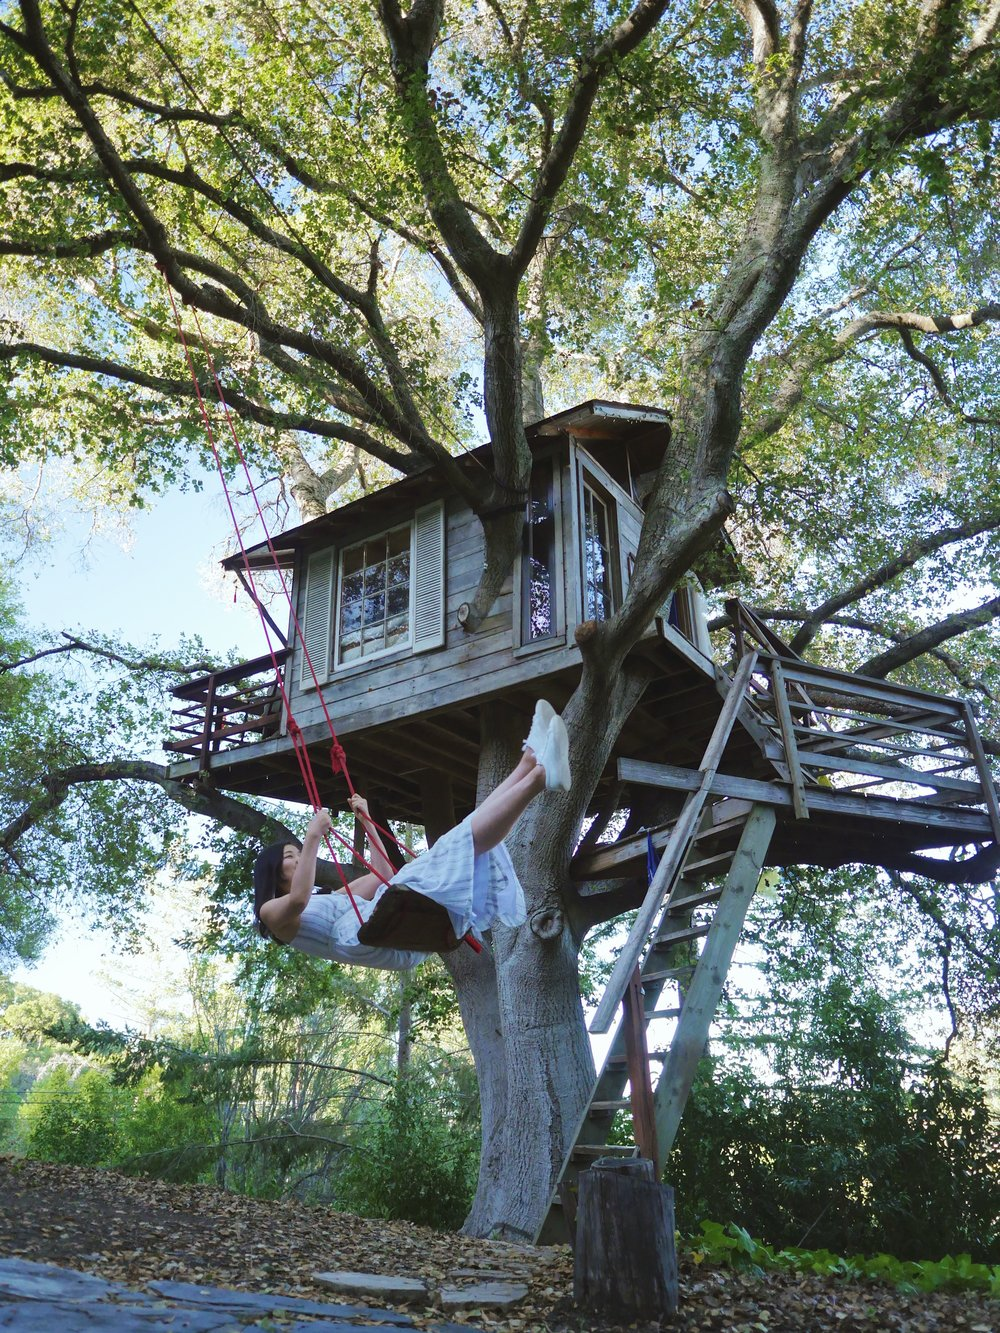 @ Doug's Tree House, Burlingame, California